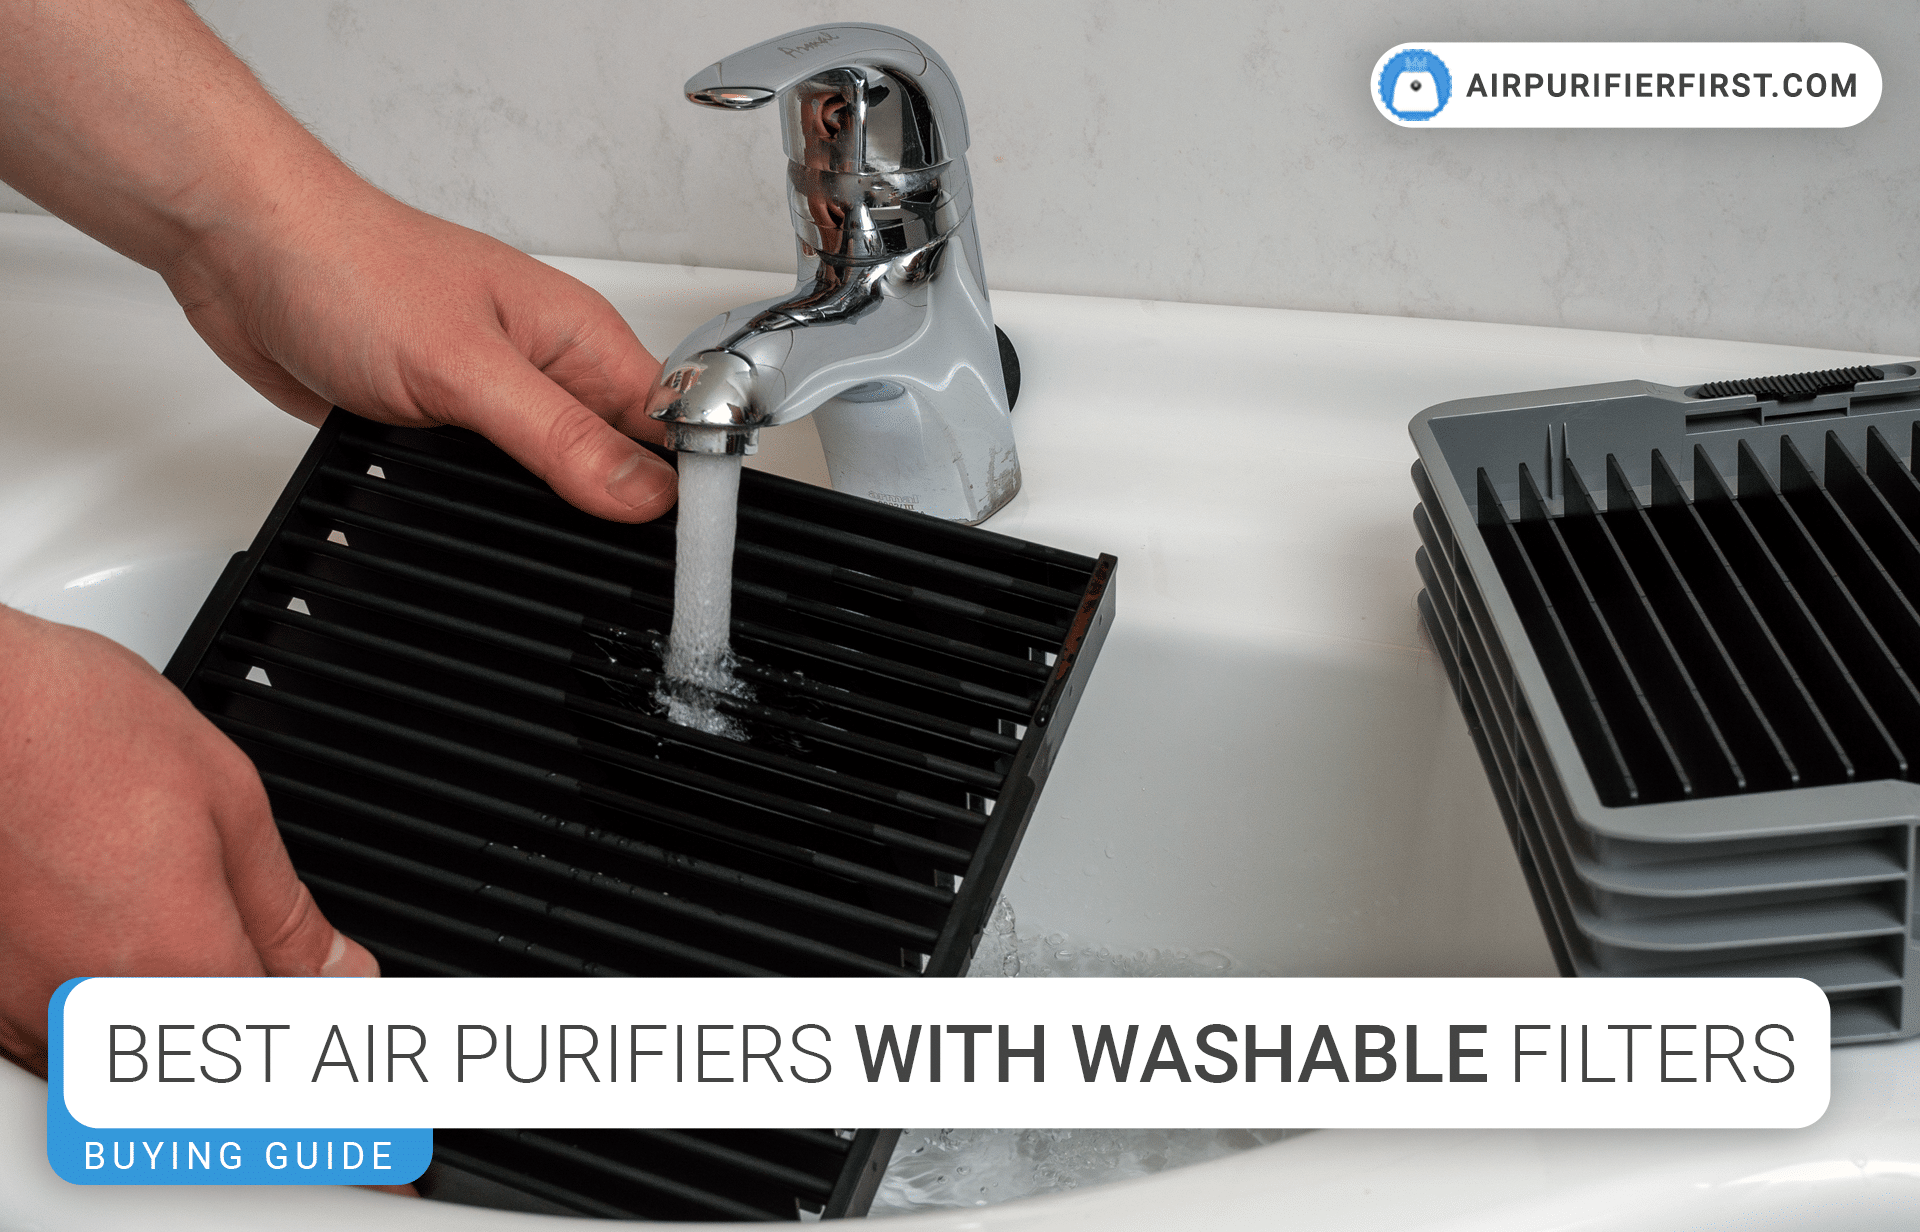 Best Air Purifiers With Washable Filters